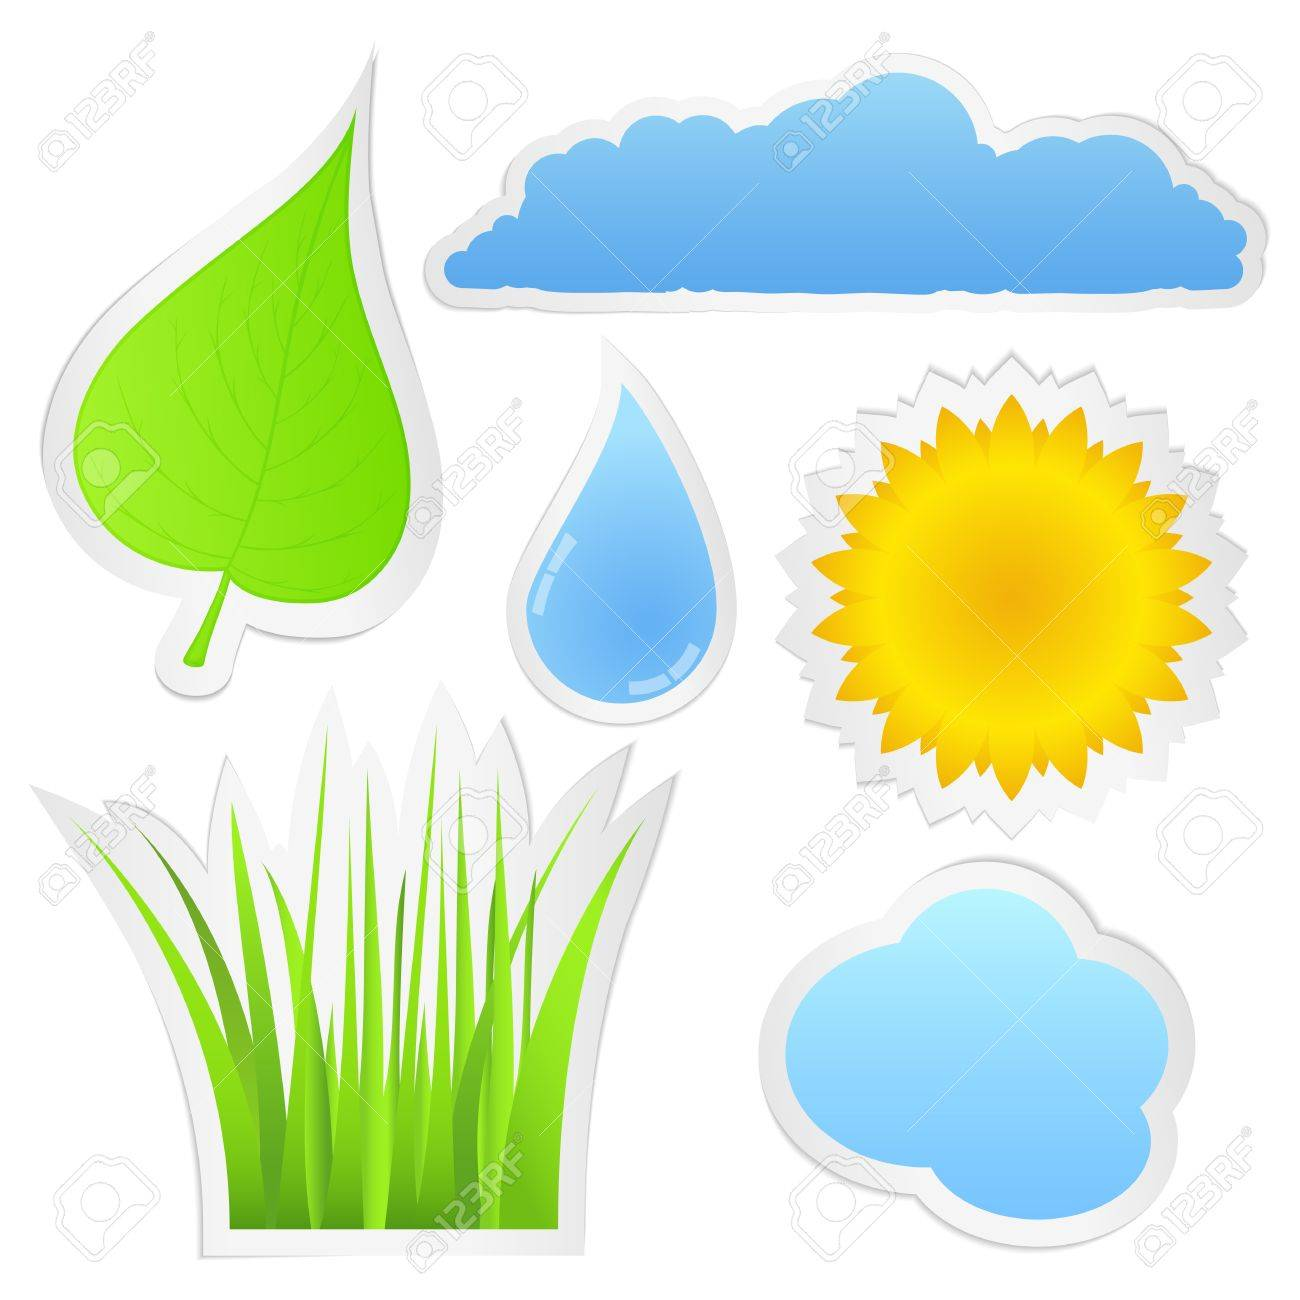 Stickers with nature elements Stock Vector - 13307530